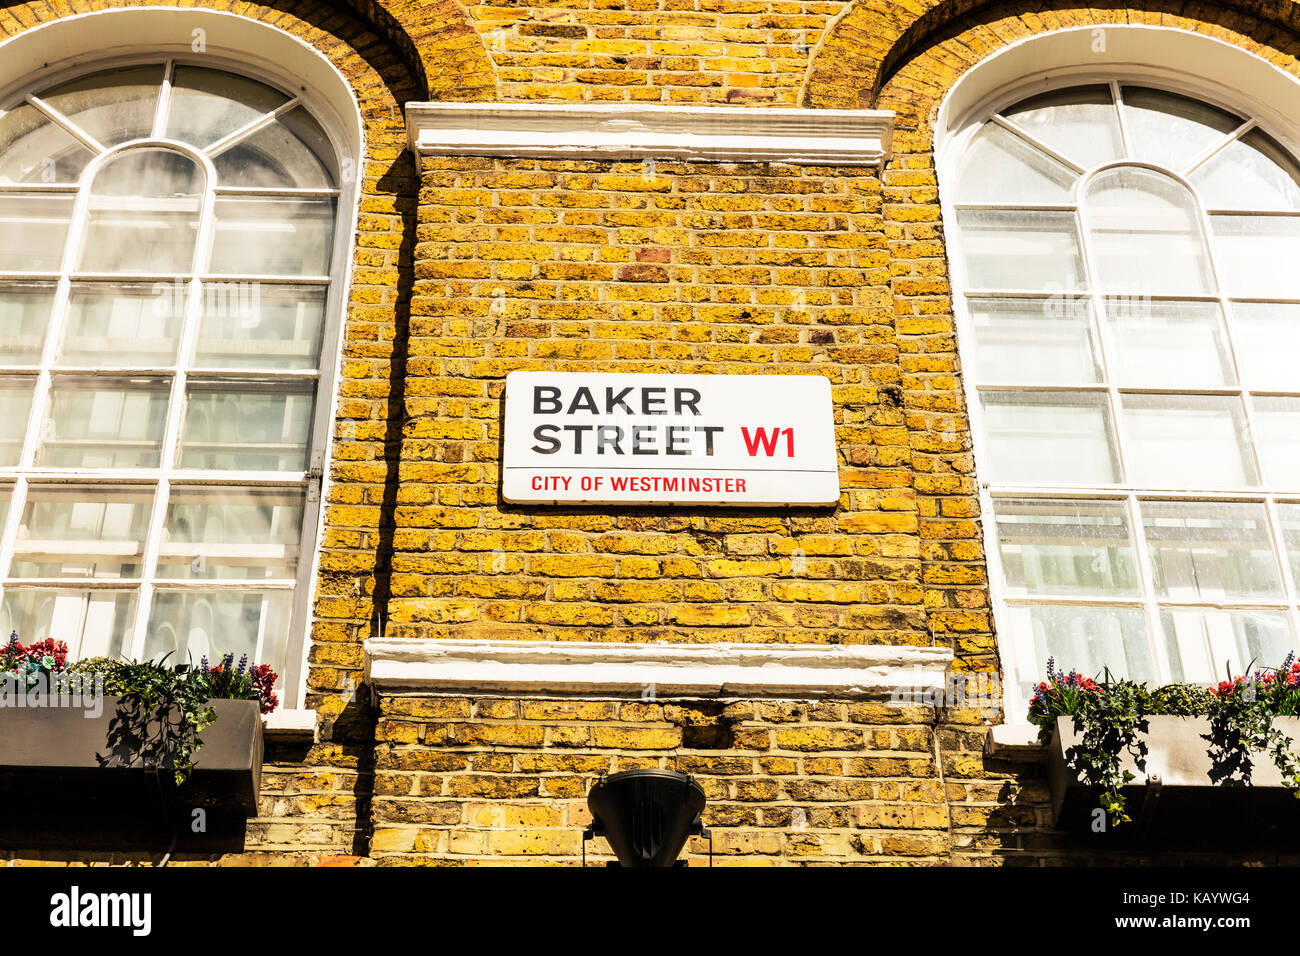 London Street Signs Stock Photos & London Street Signs Stock Images ...